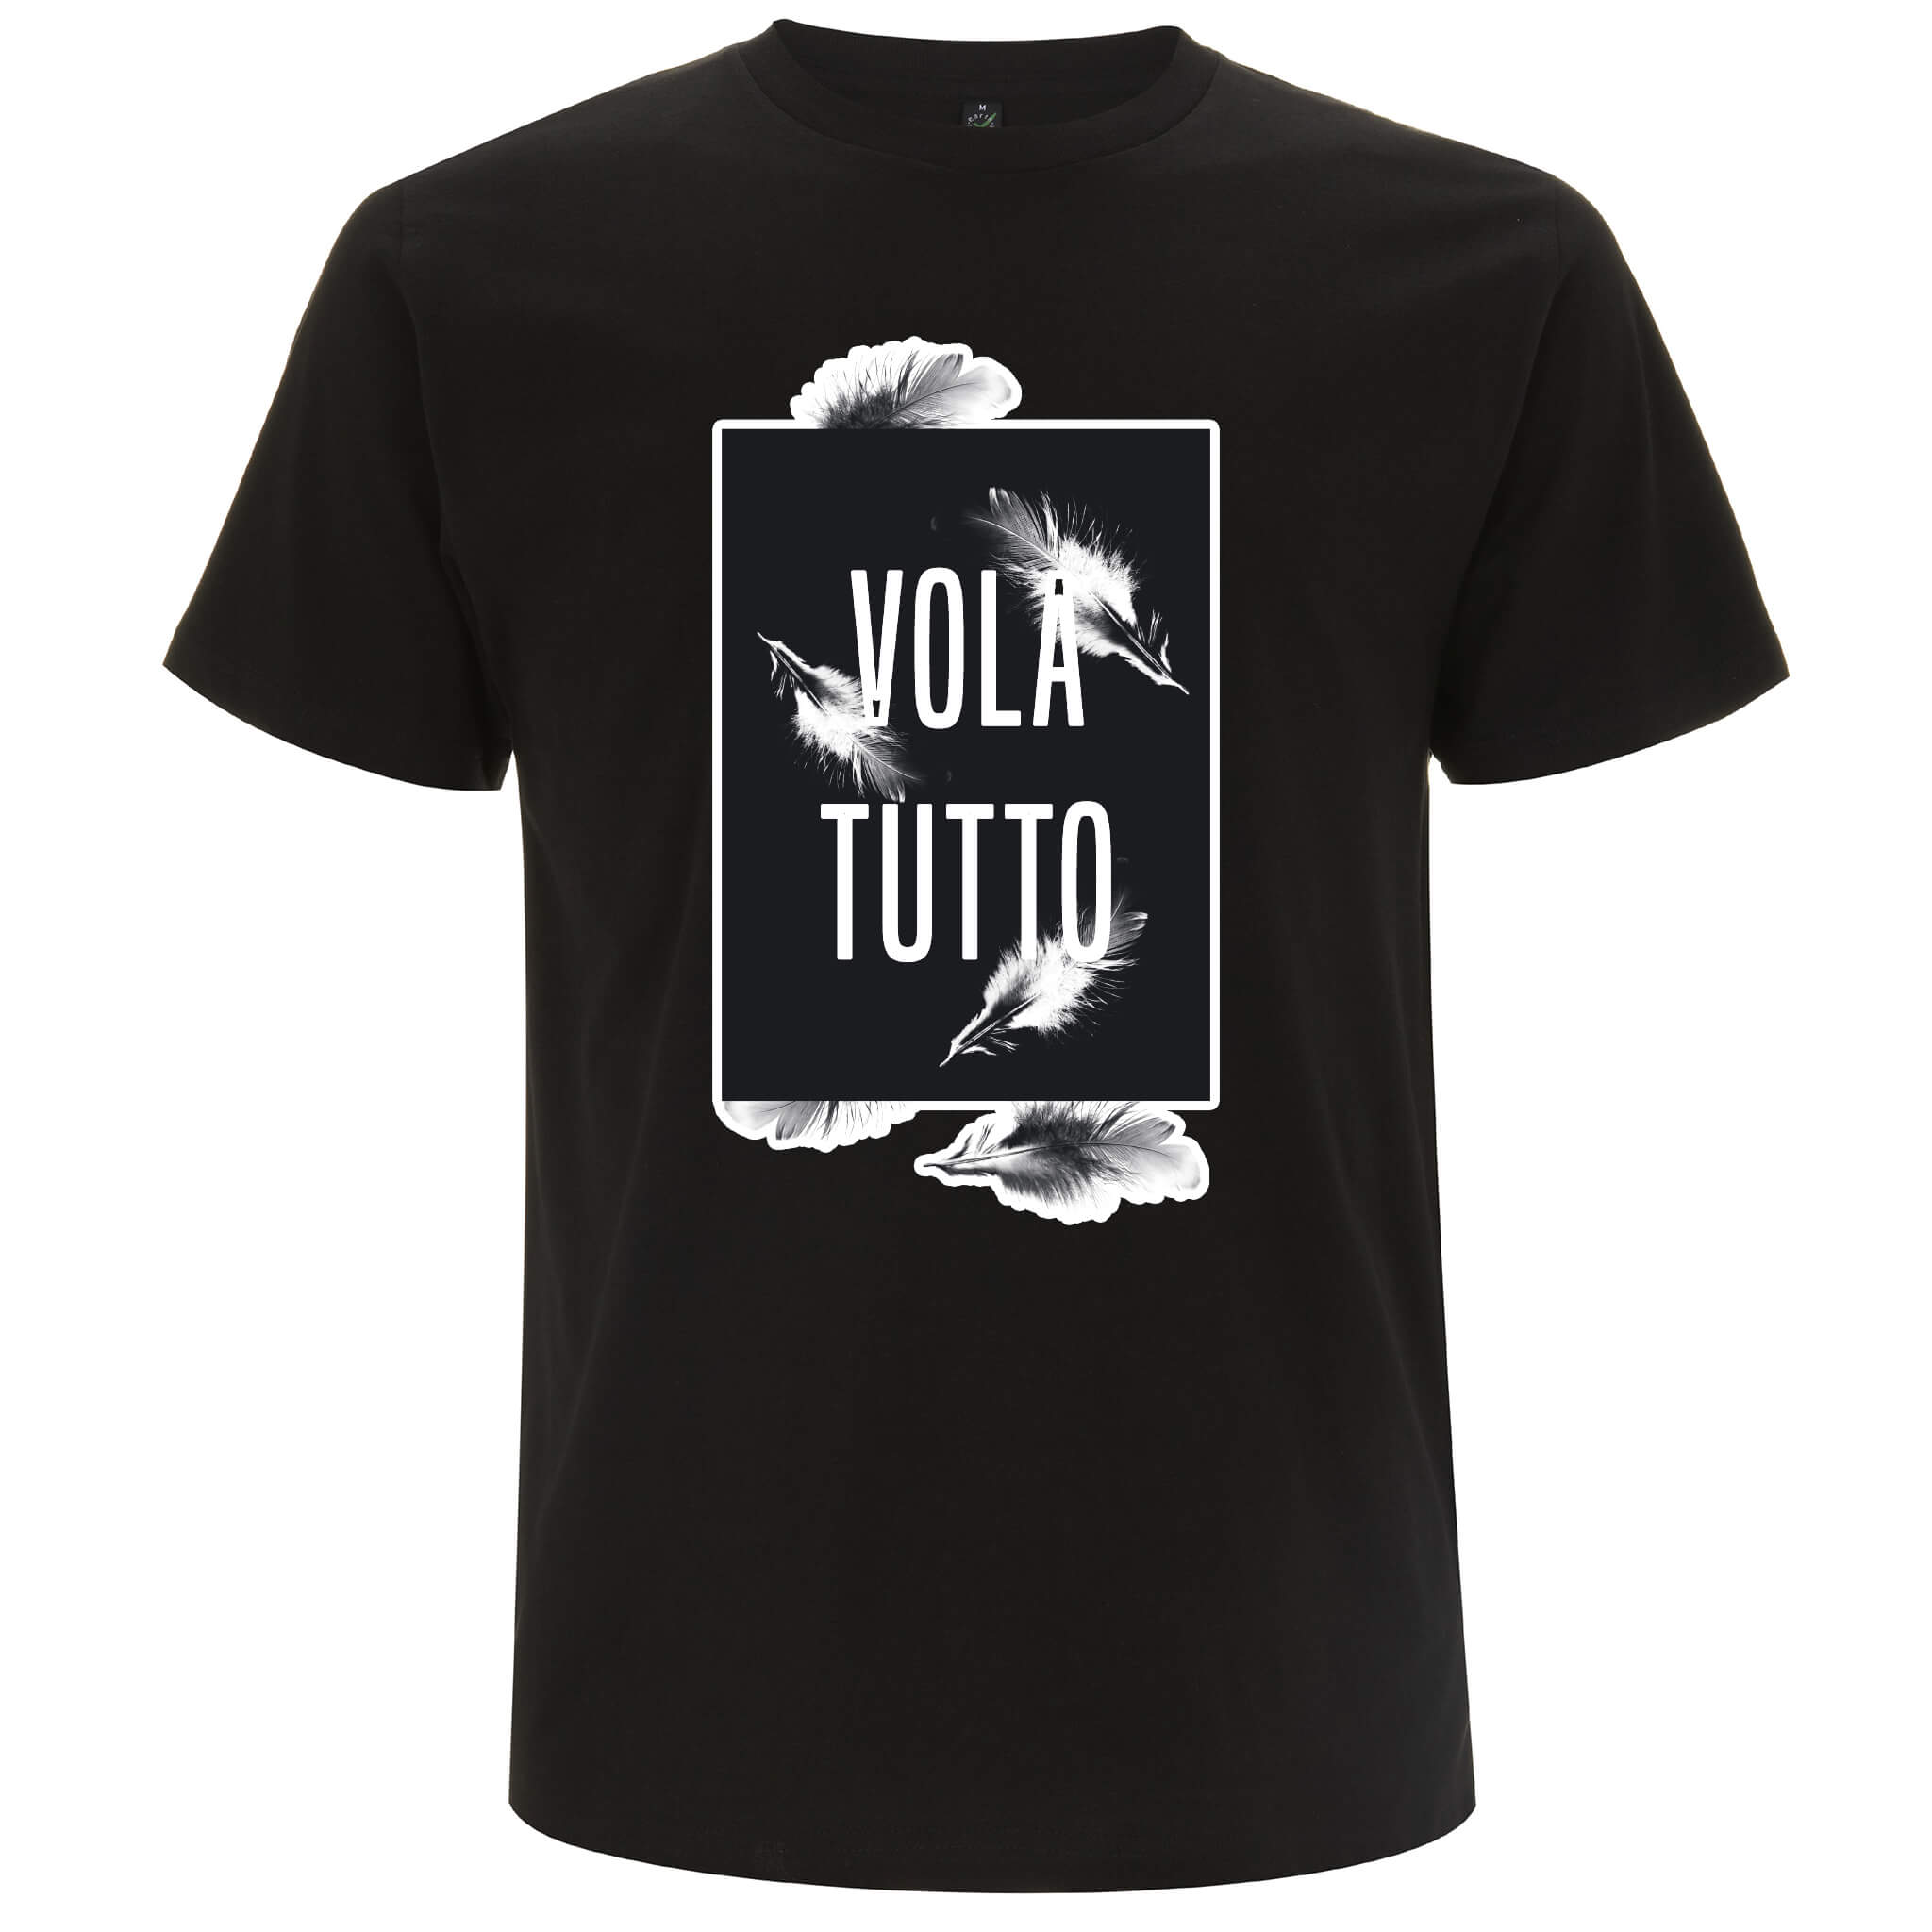 Volatutto Piume - T-shirt Uomo - T-Shirt by Fol The Brand